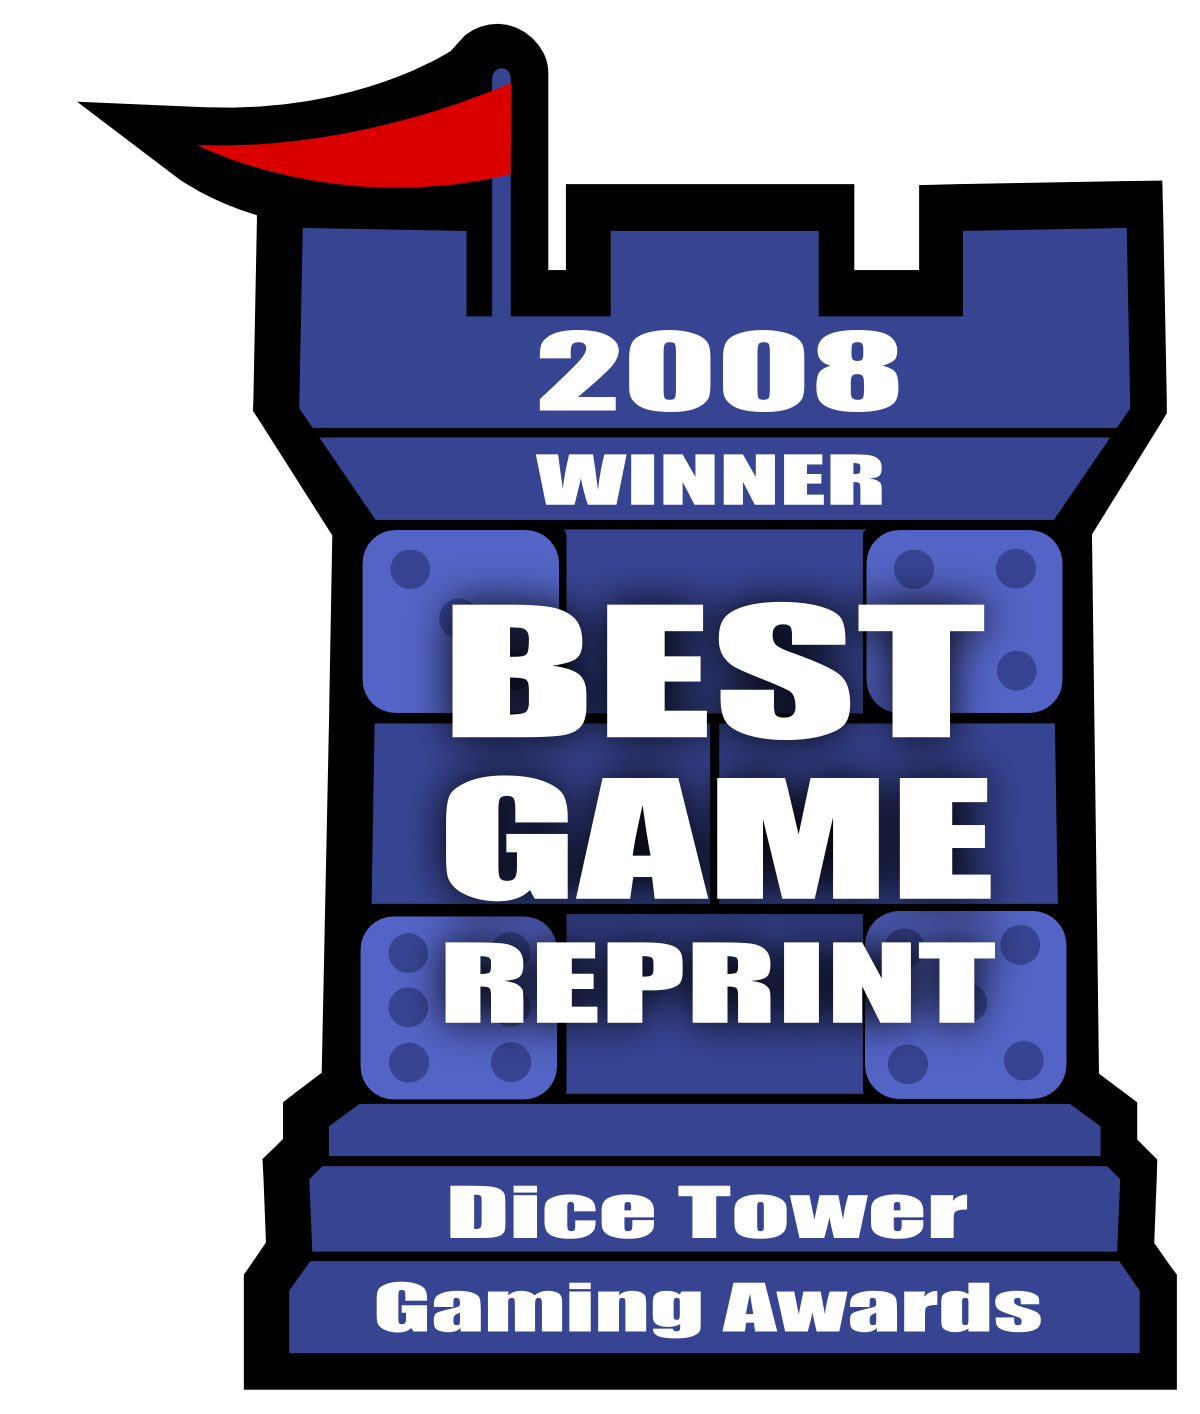 2008 Best Game Reprint Winner